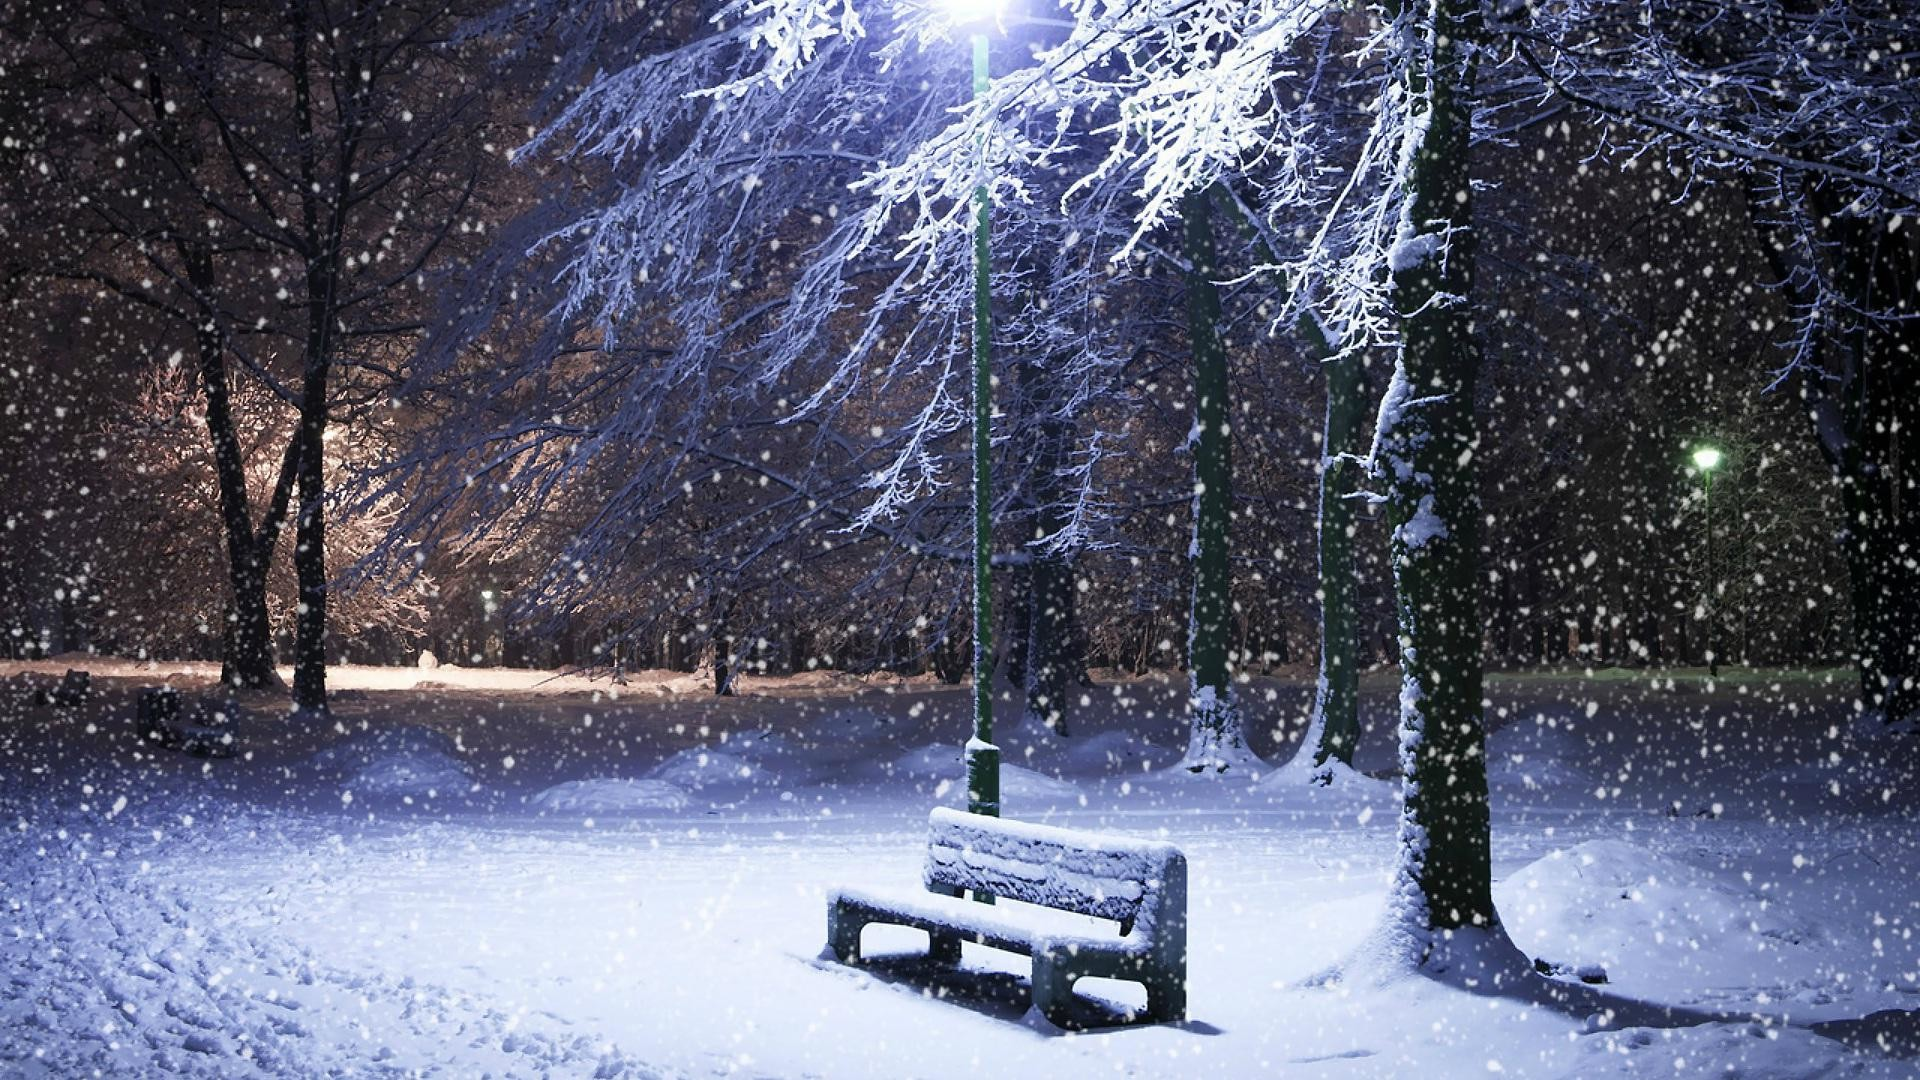 Winter wallpaper for pc - Free winter wallpaper for phone ...